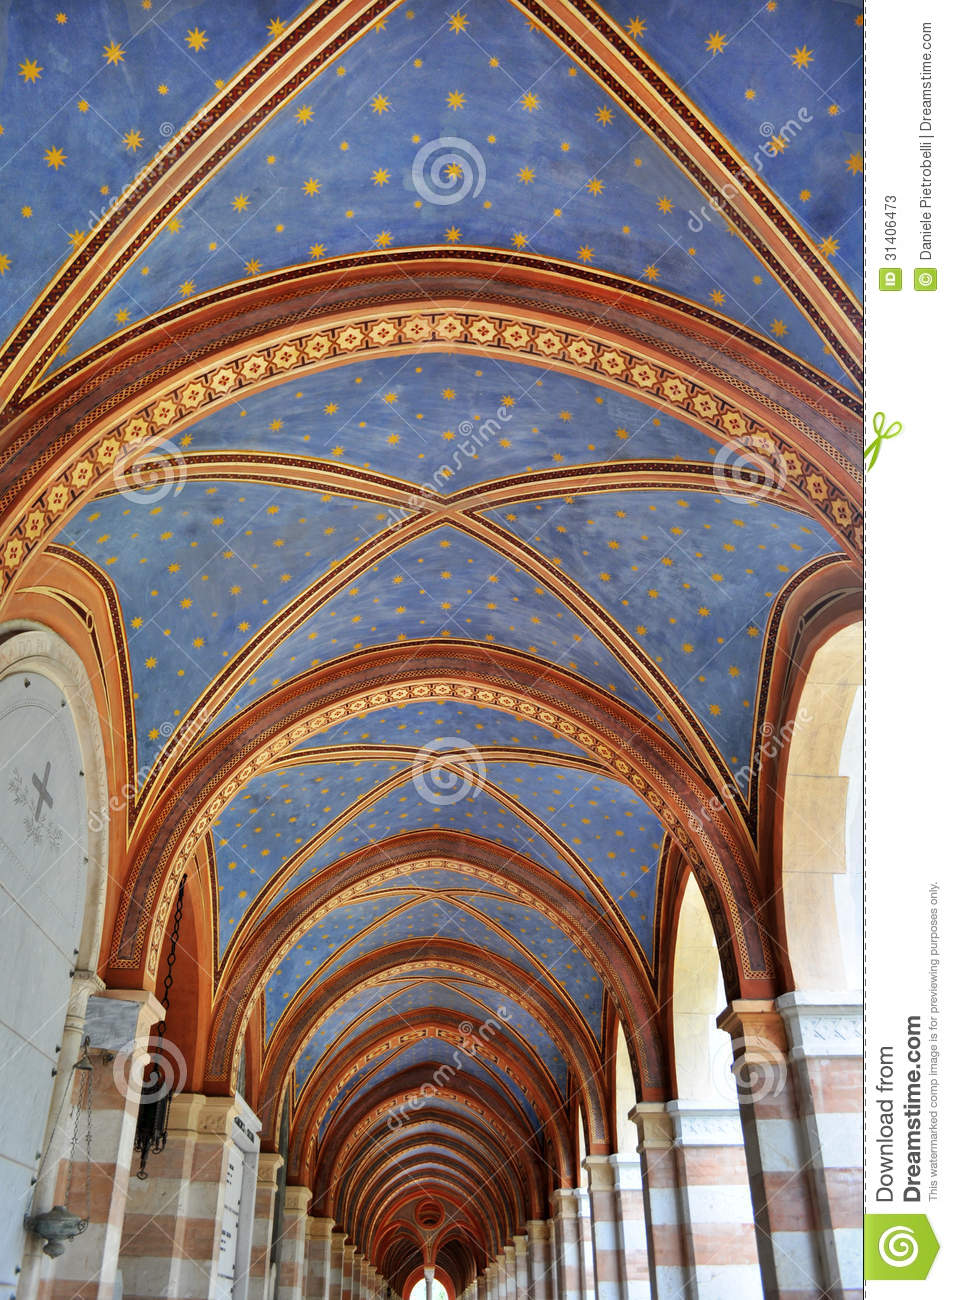 Painted ceiling stock photos image 31406473 for Archway ceilings